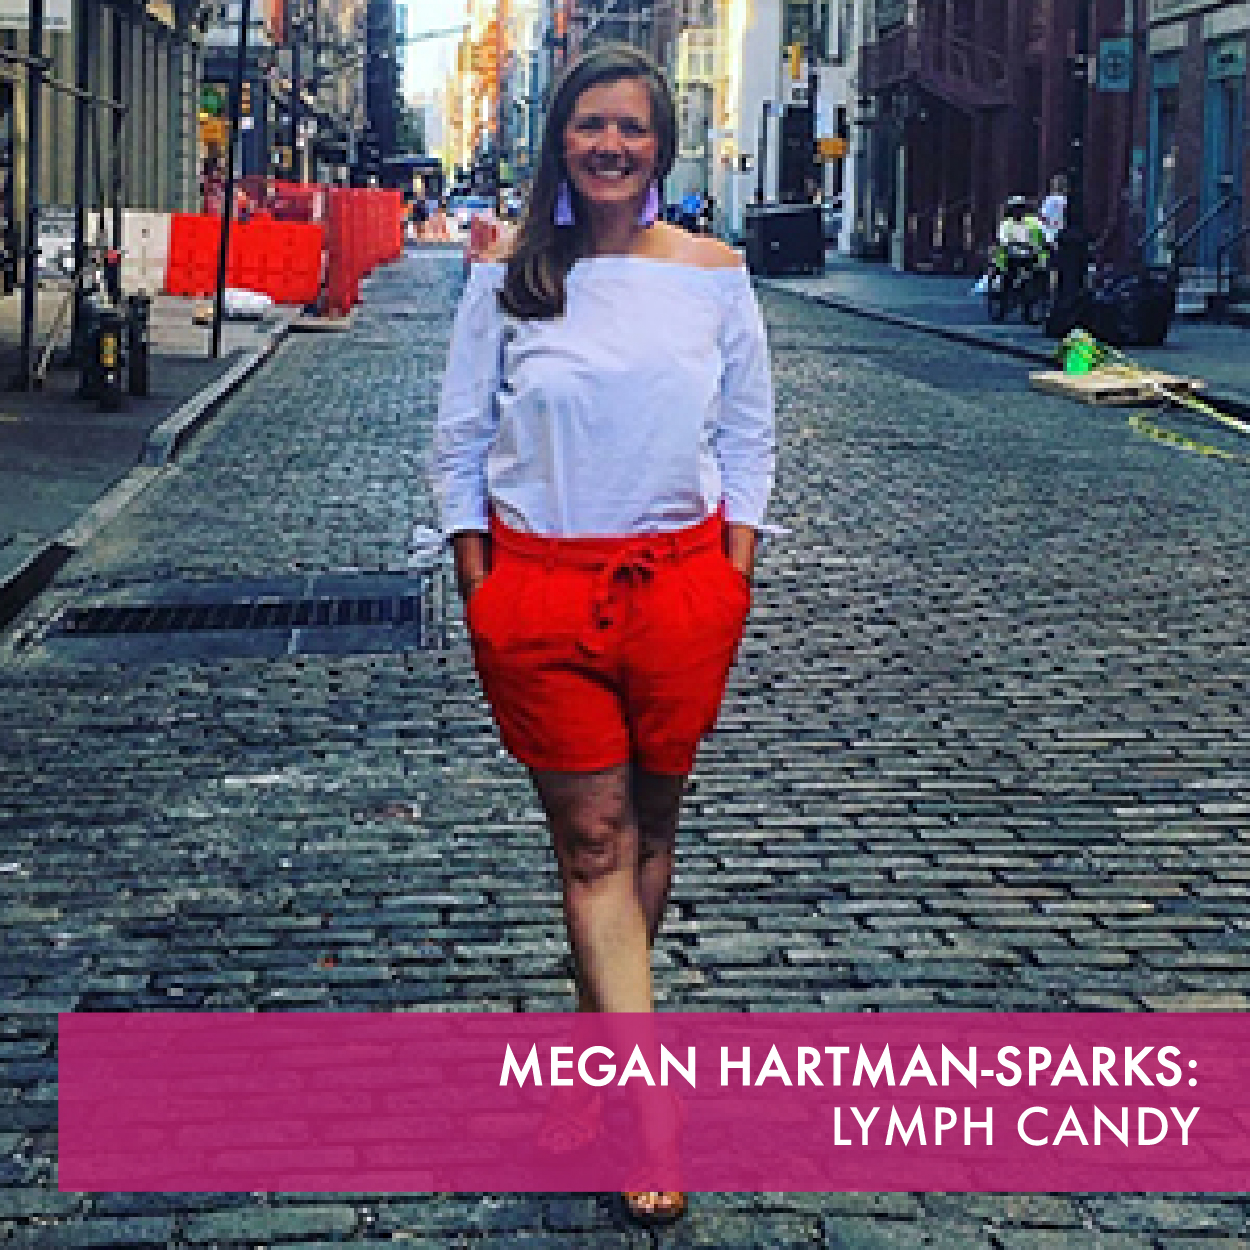 Lymph Candy, is a deodorant line focused on bringing a nontoxic product to the global marketplace. Formulated with just six ingredients, it is designed to promote lymphatic health.